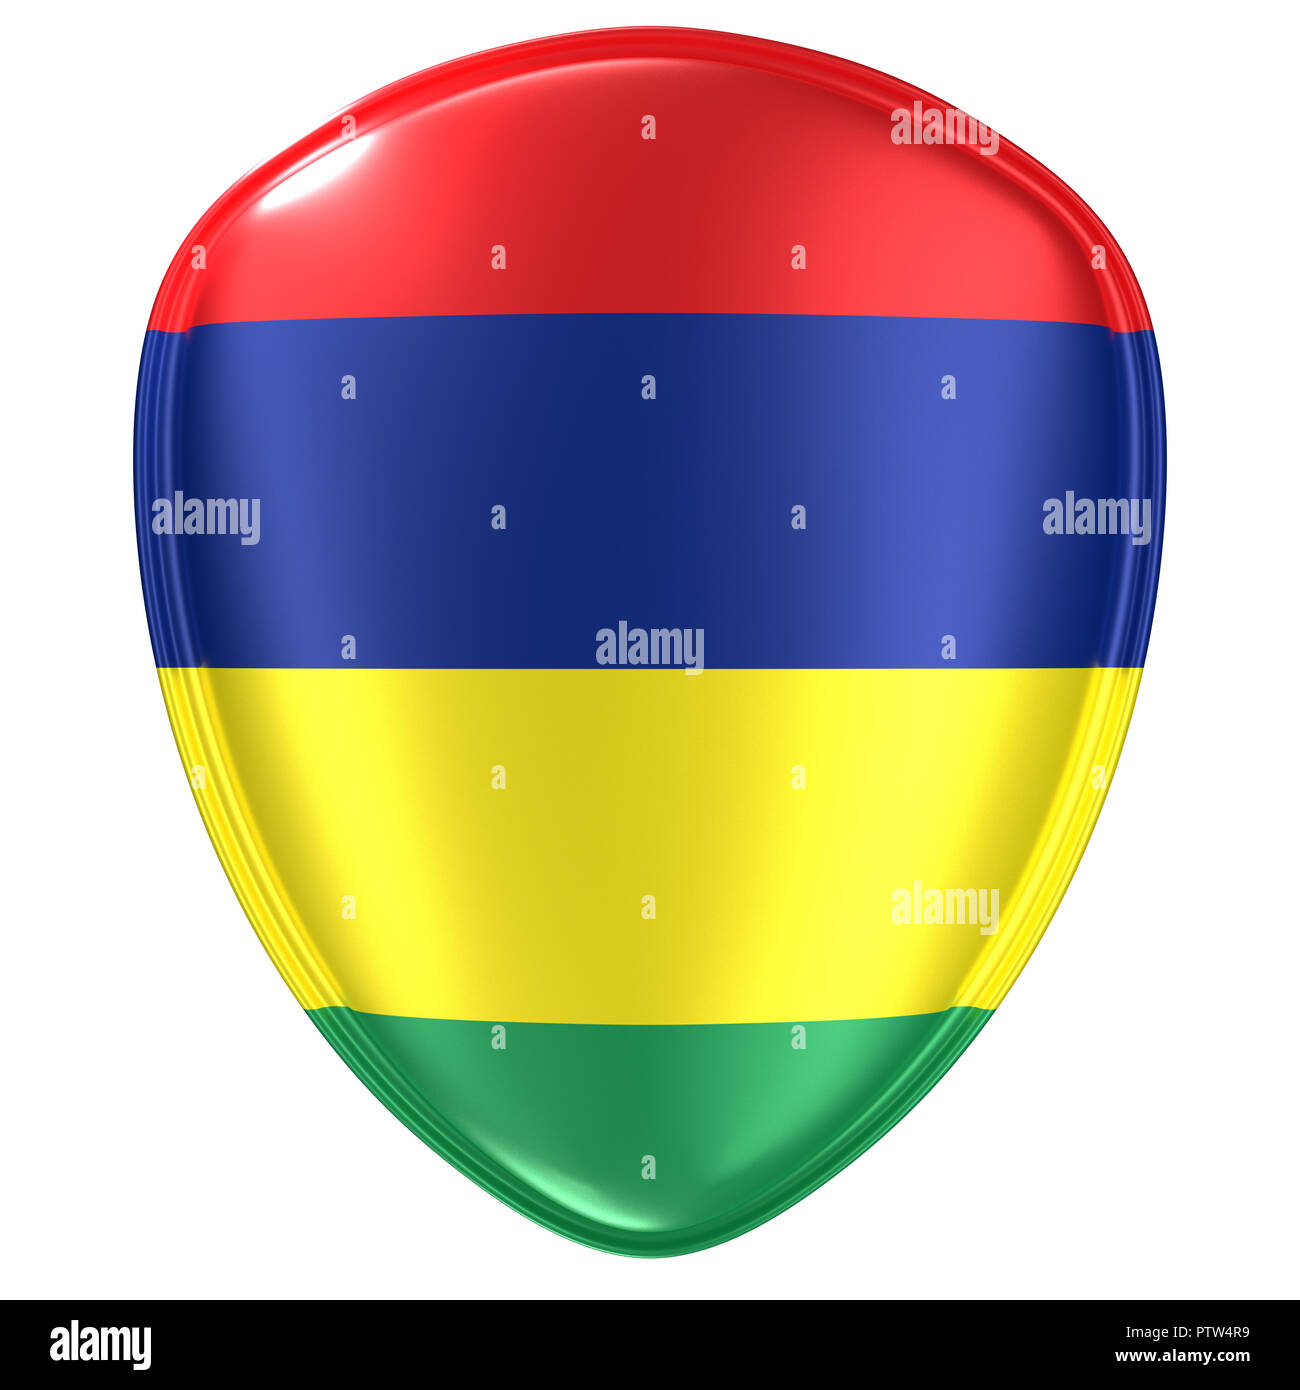 3d rendering of a Republic of Mauritius flag icon on white background. Stock Photo